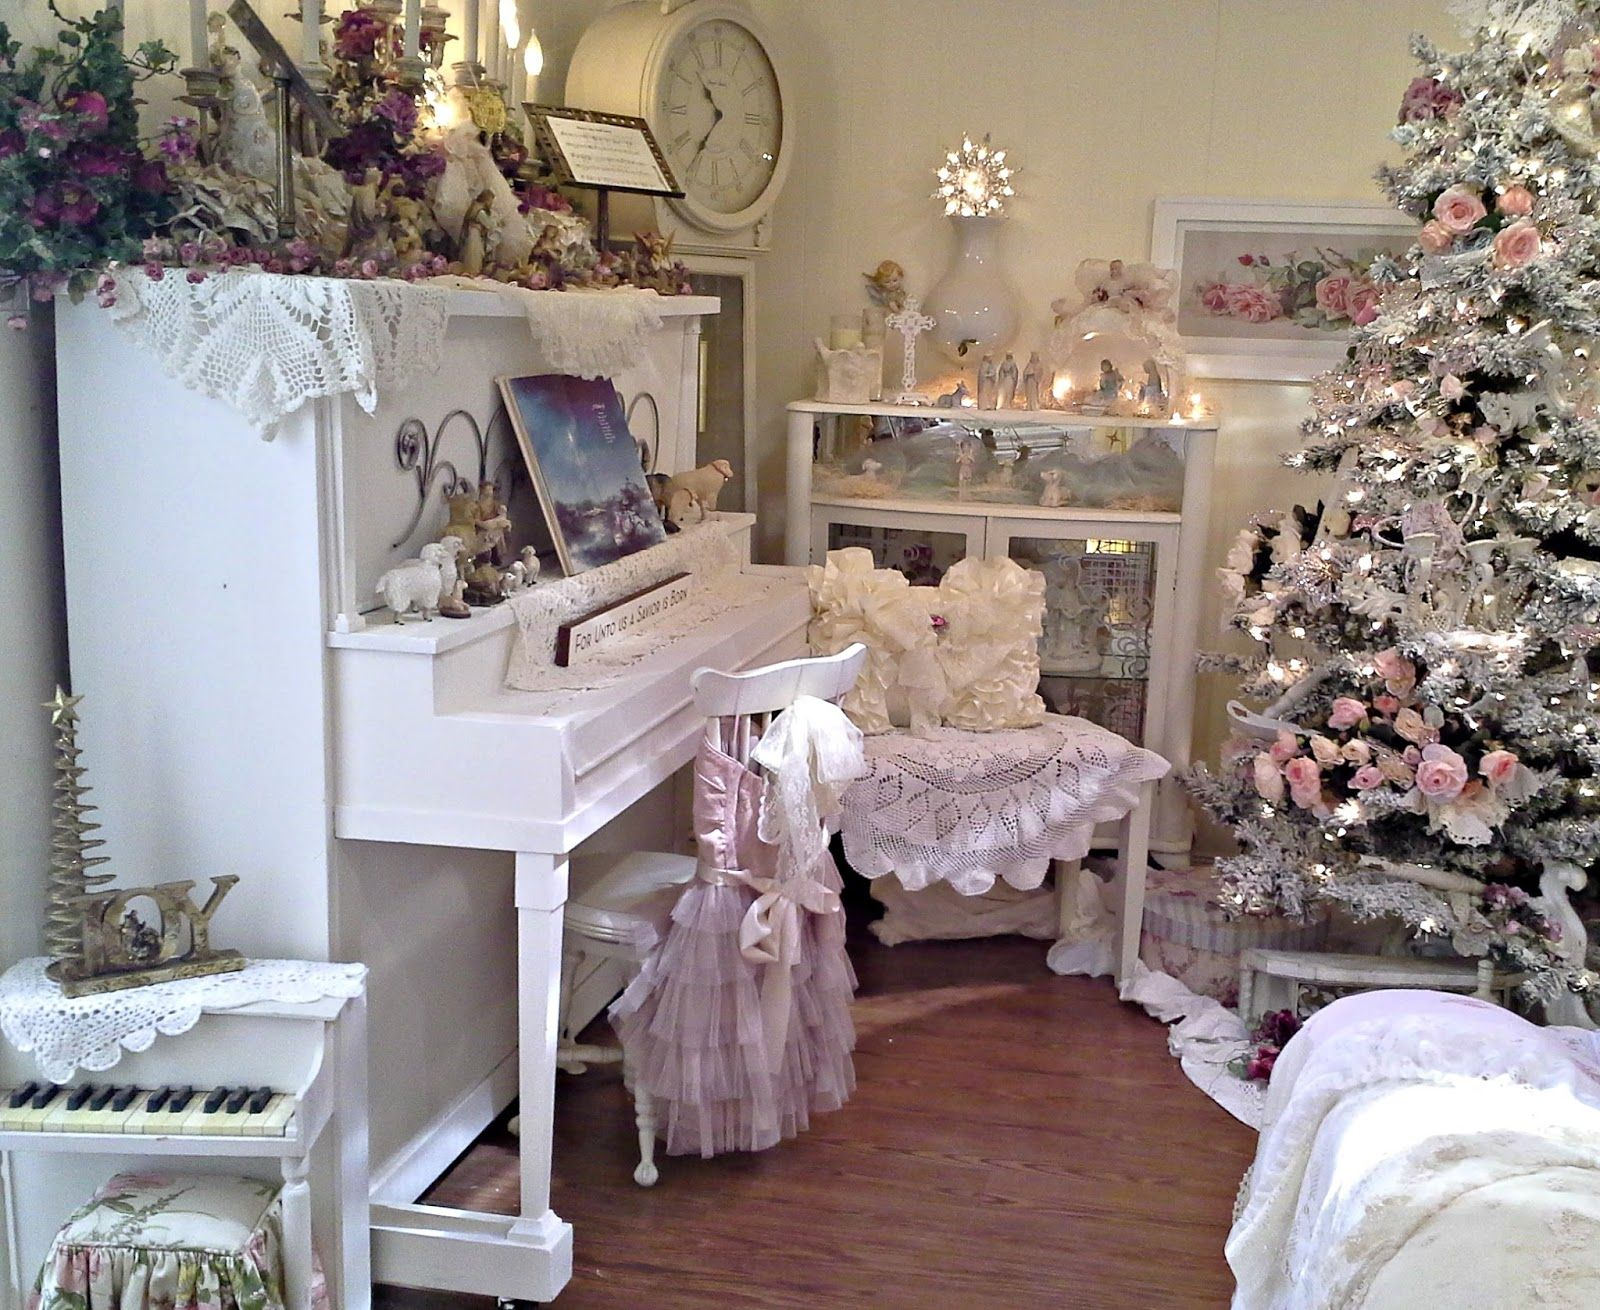 Penny's Vintage Home: The Christmas Story